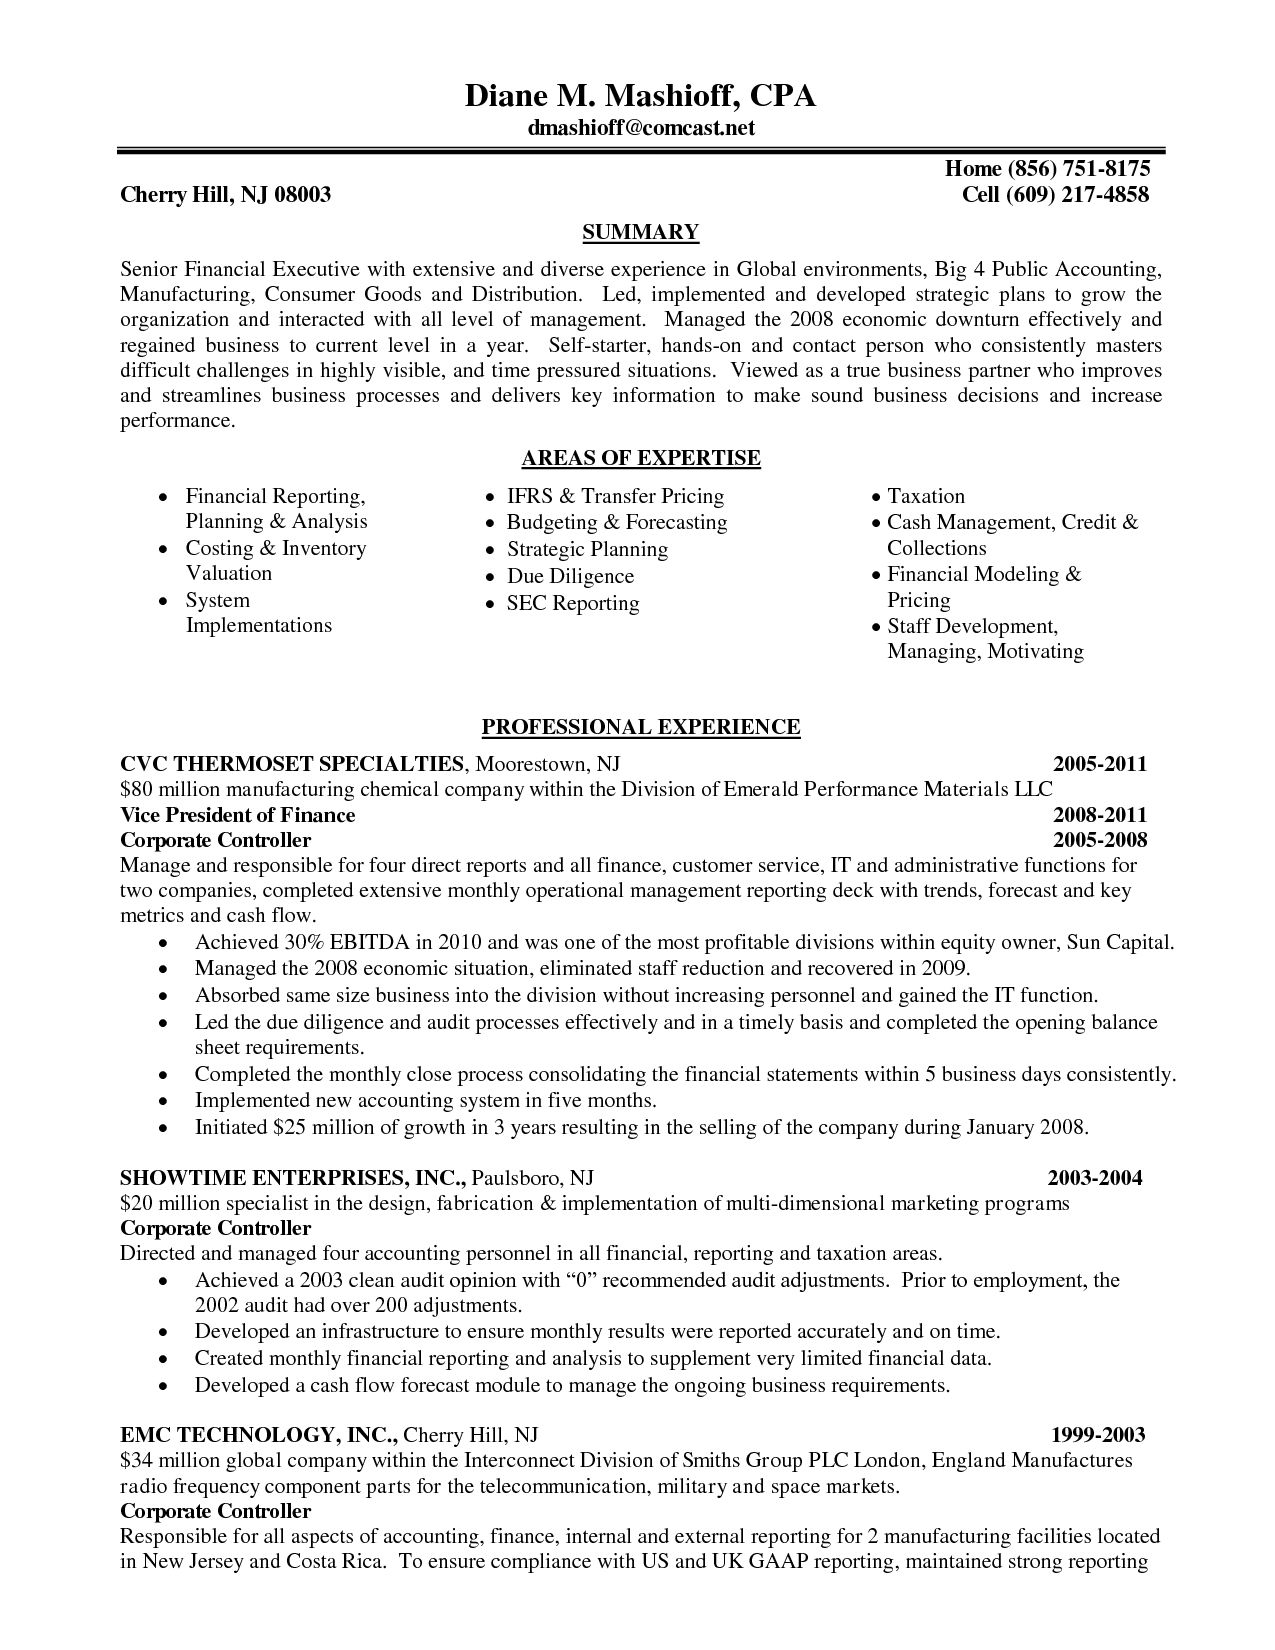 Resume Examples Big 4 Accounting | Pinterest | Resume examples